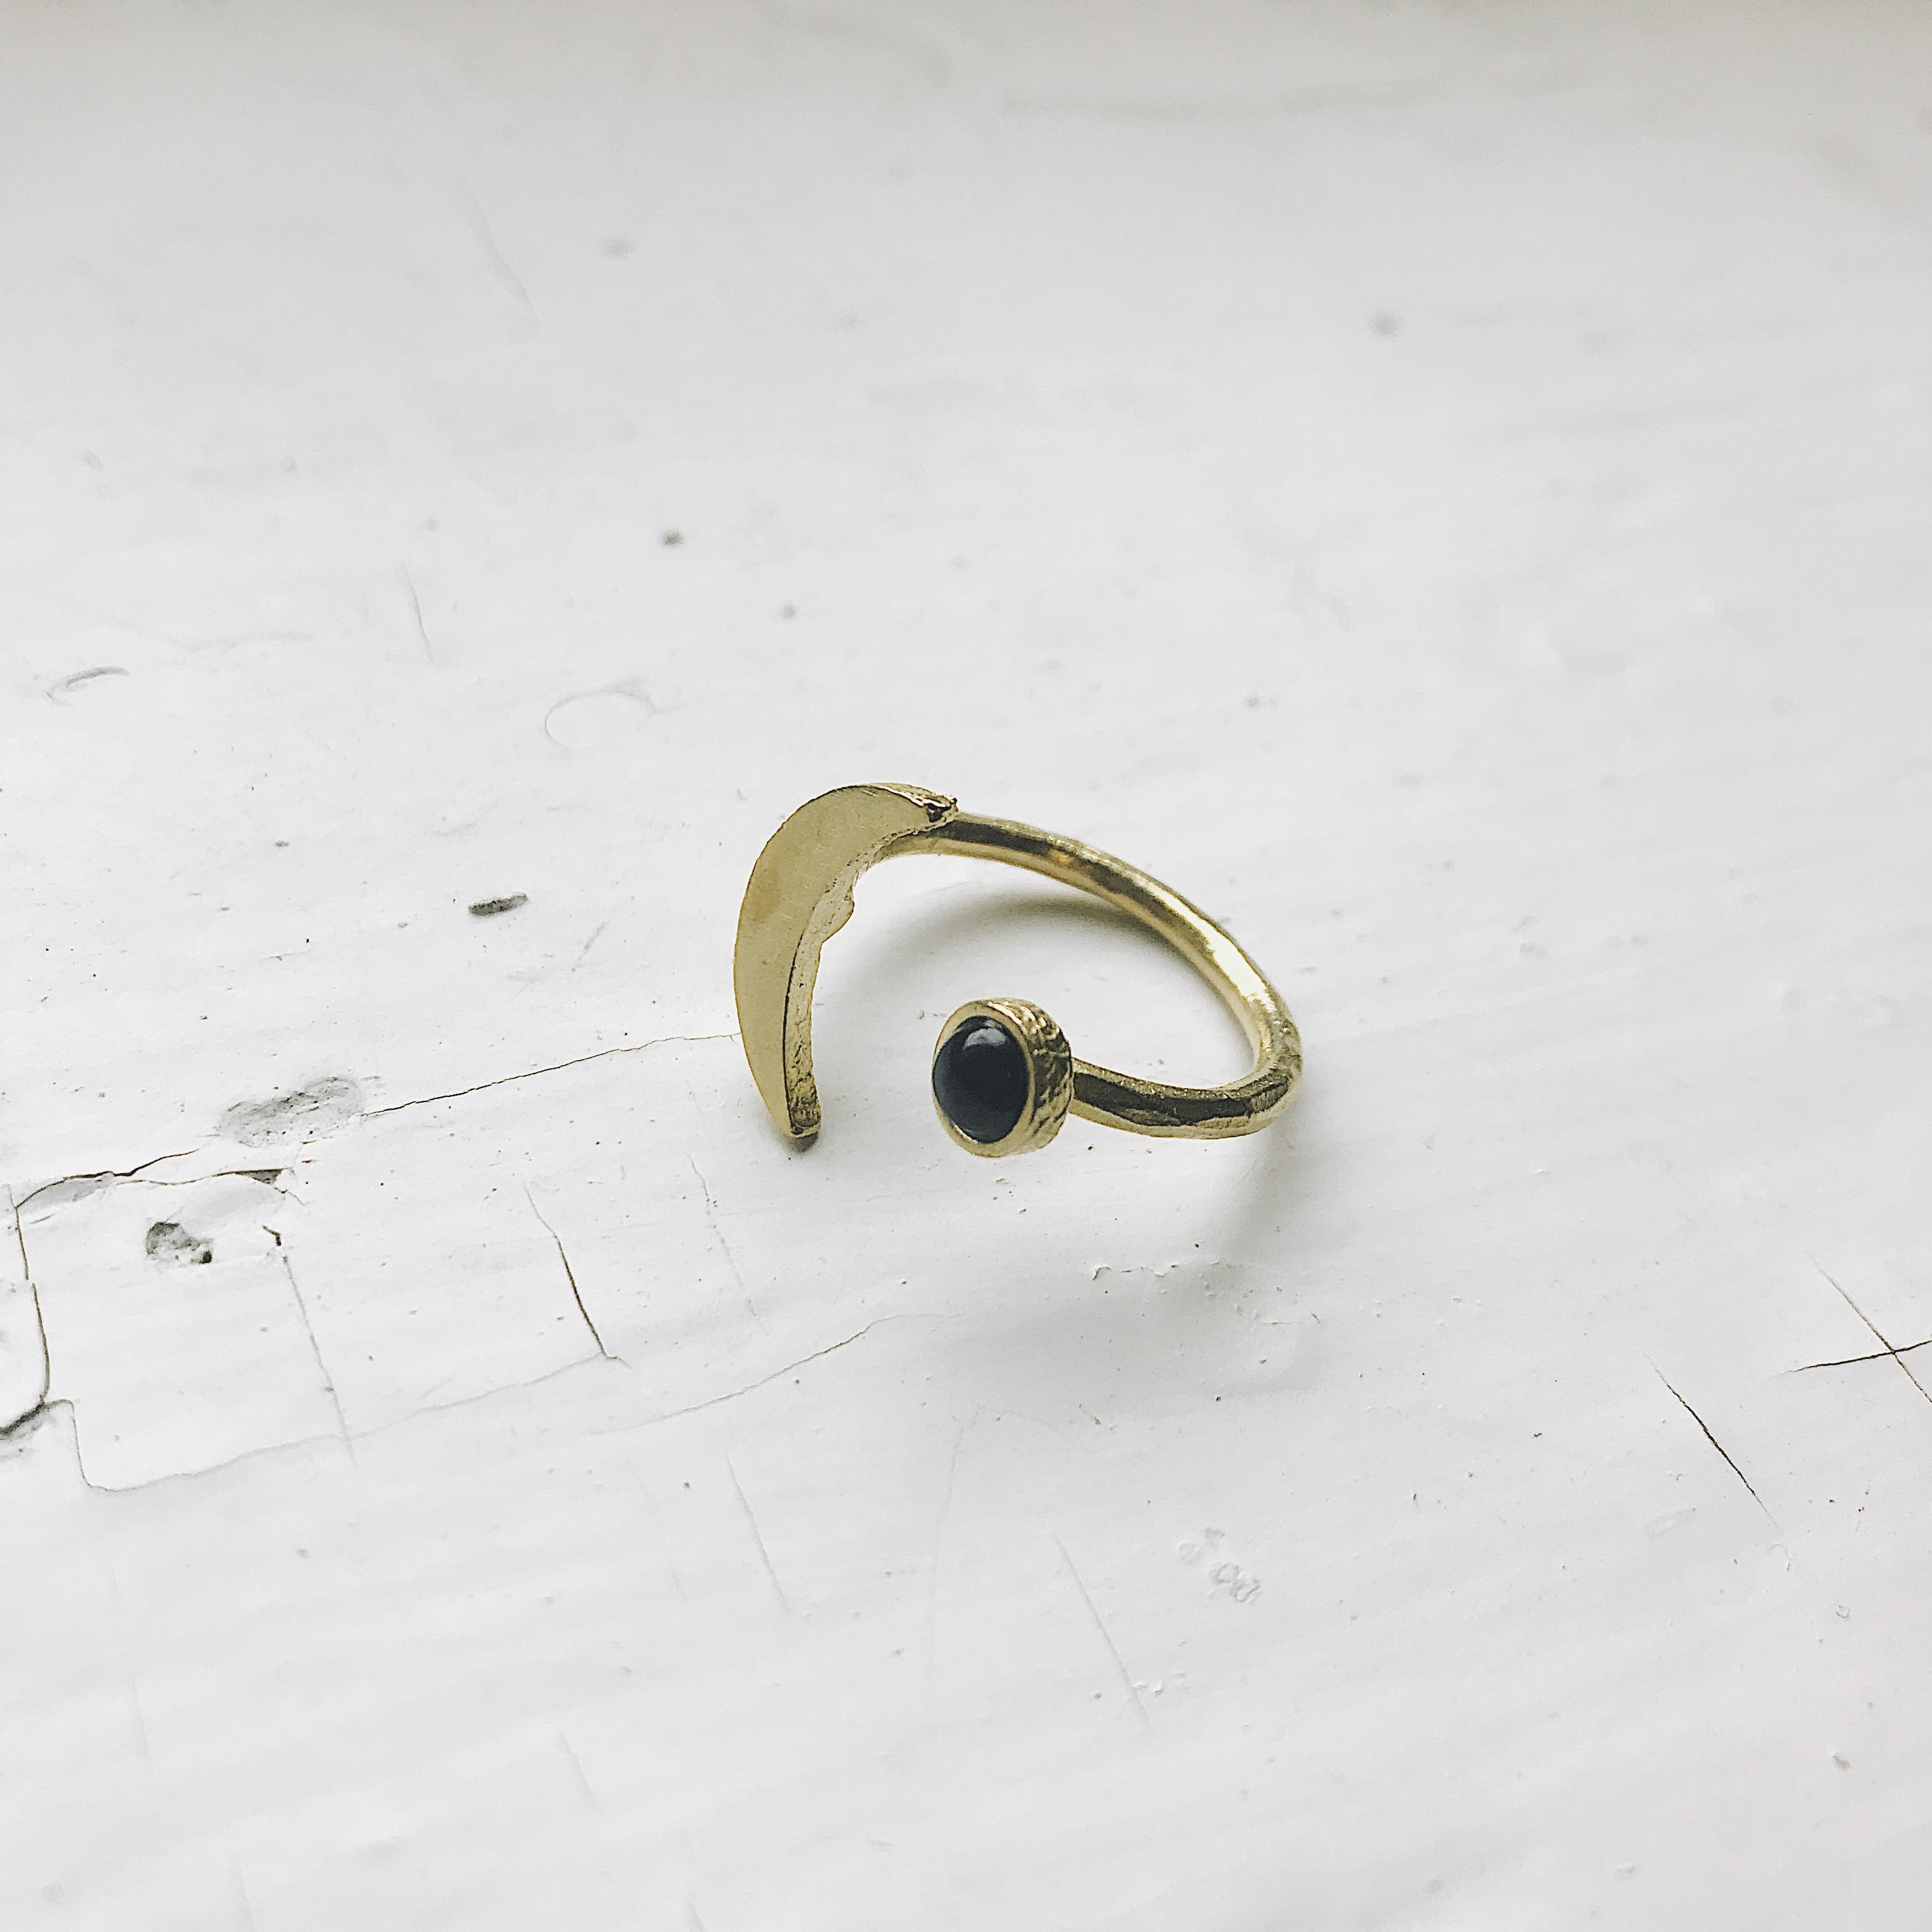 Gold Crescent Moon Ring with Black Onyx